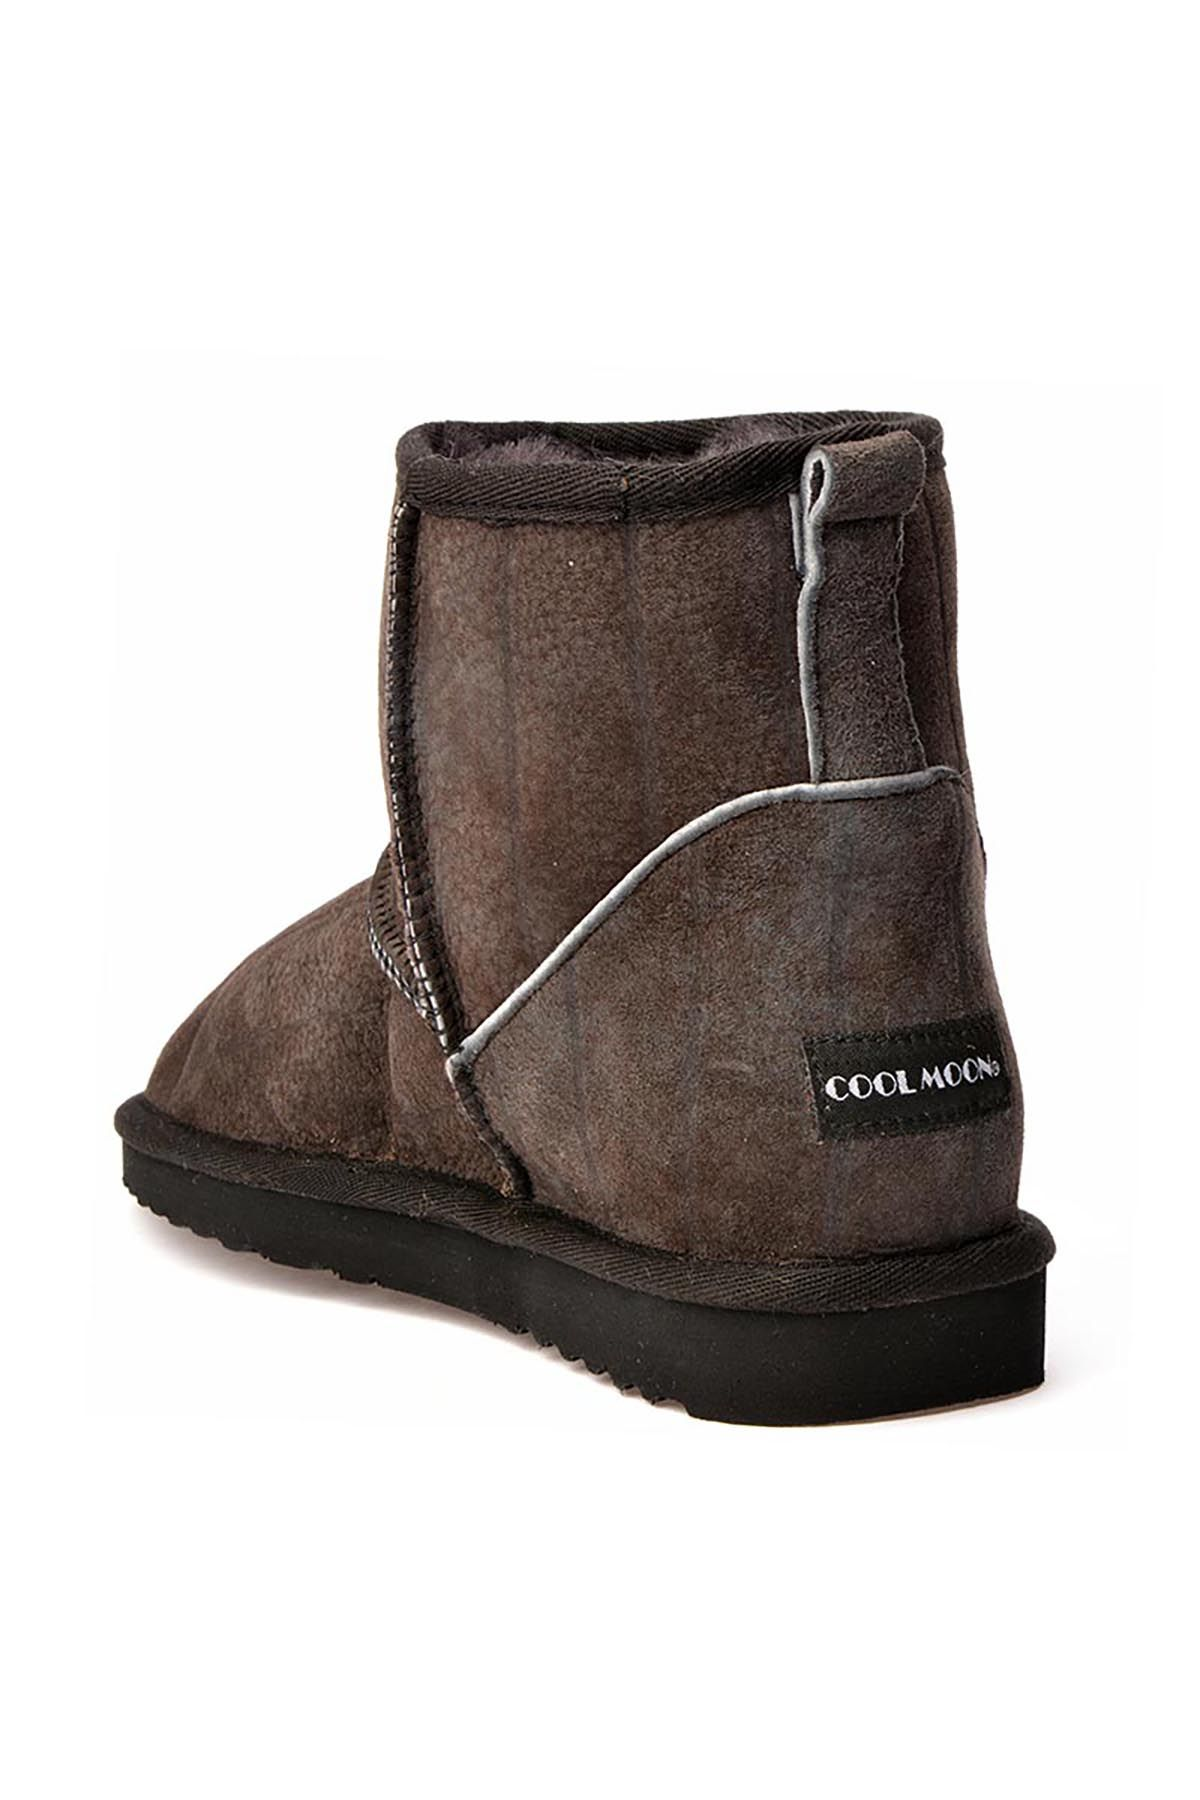 Cool Moon Women Uggs From Genuine Fur With Stripes Pattern Gray